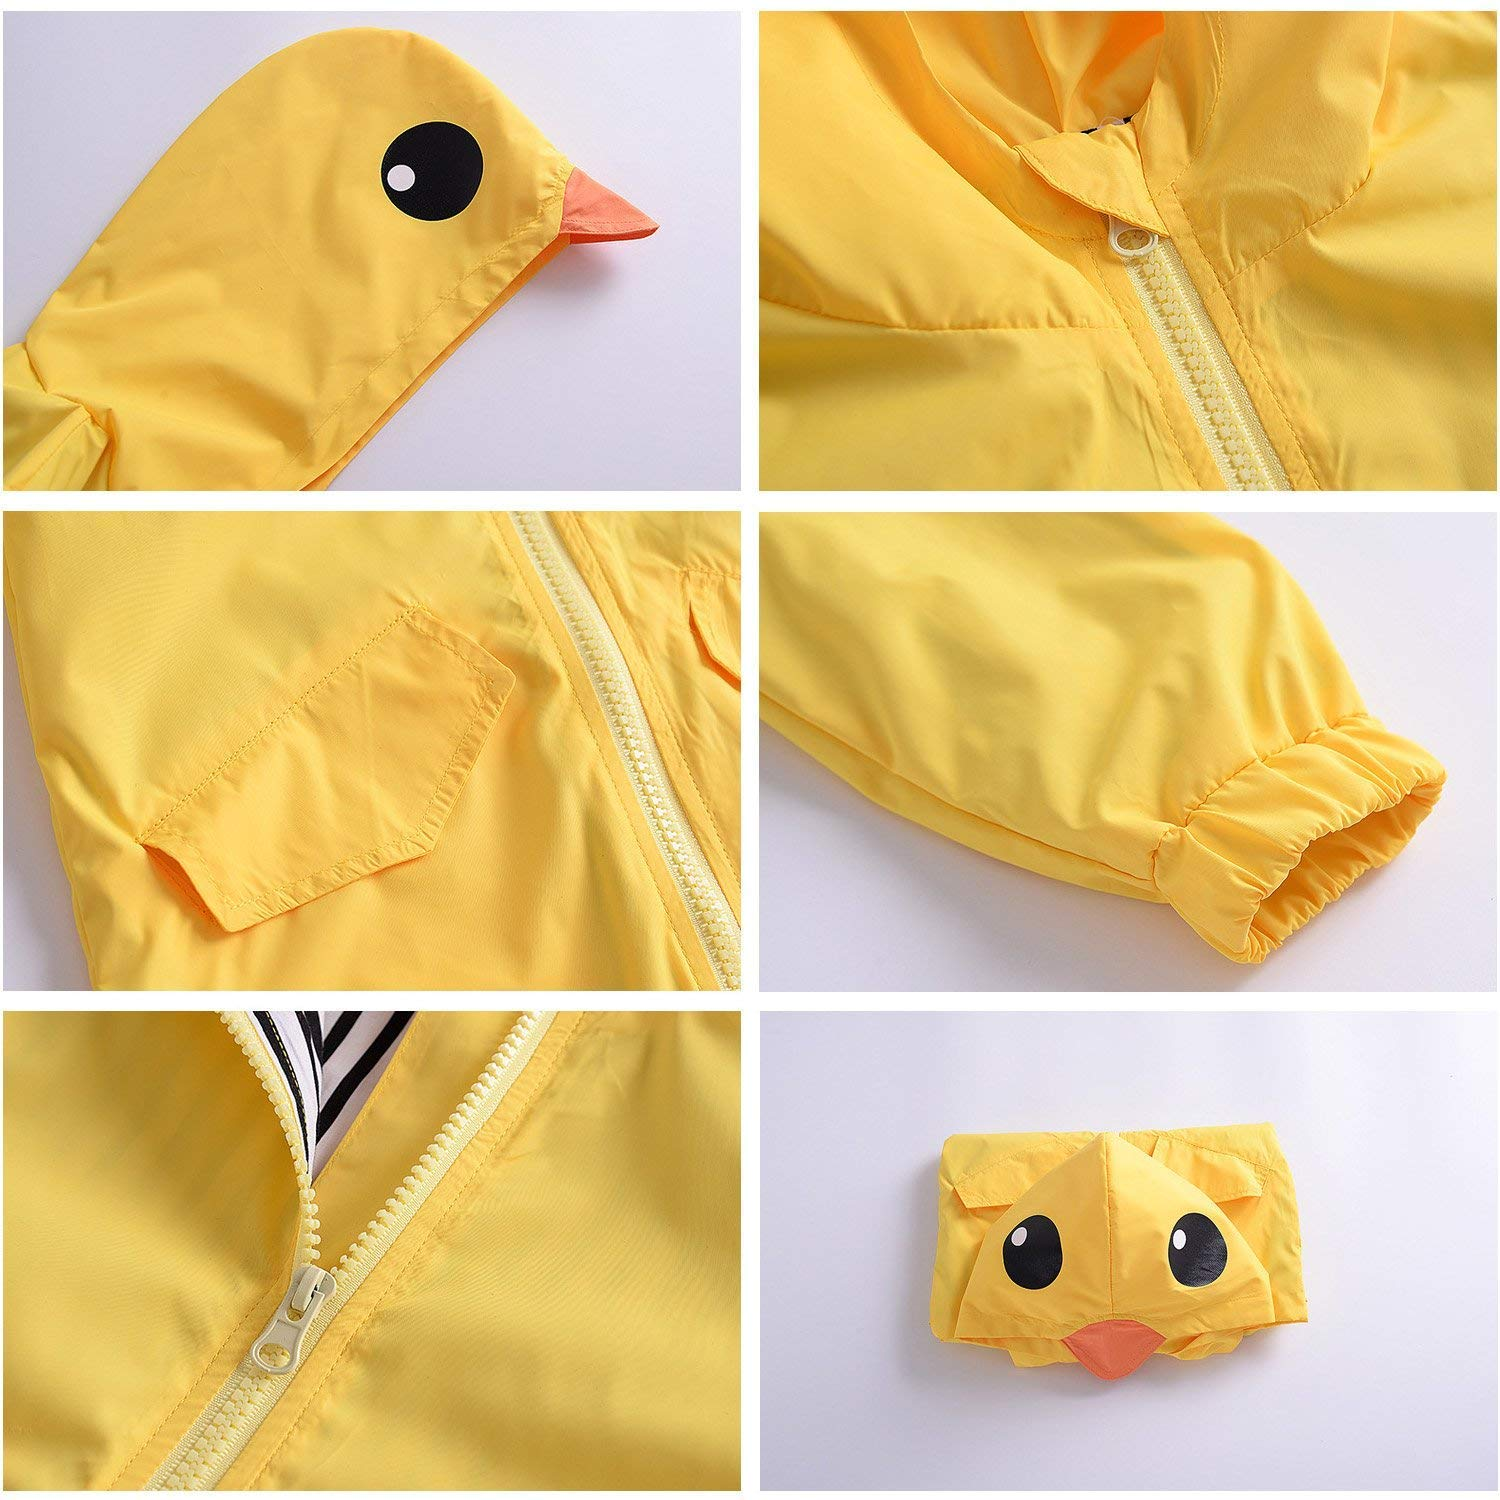 YOUNGER TREE Toddler Baby Boy Girl Duck Raincoat Cute Cartoon Hoodie Zipper Coat Outfit (Yellow, 80) by YOUNGER TREE (Image #4)